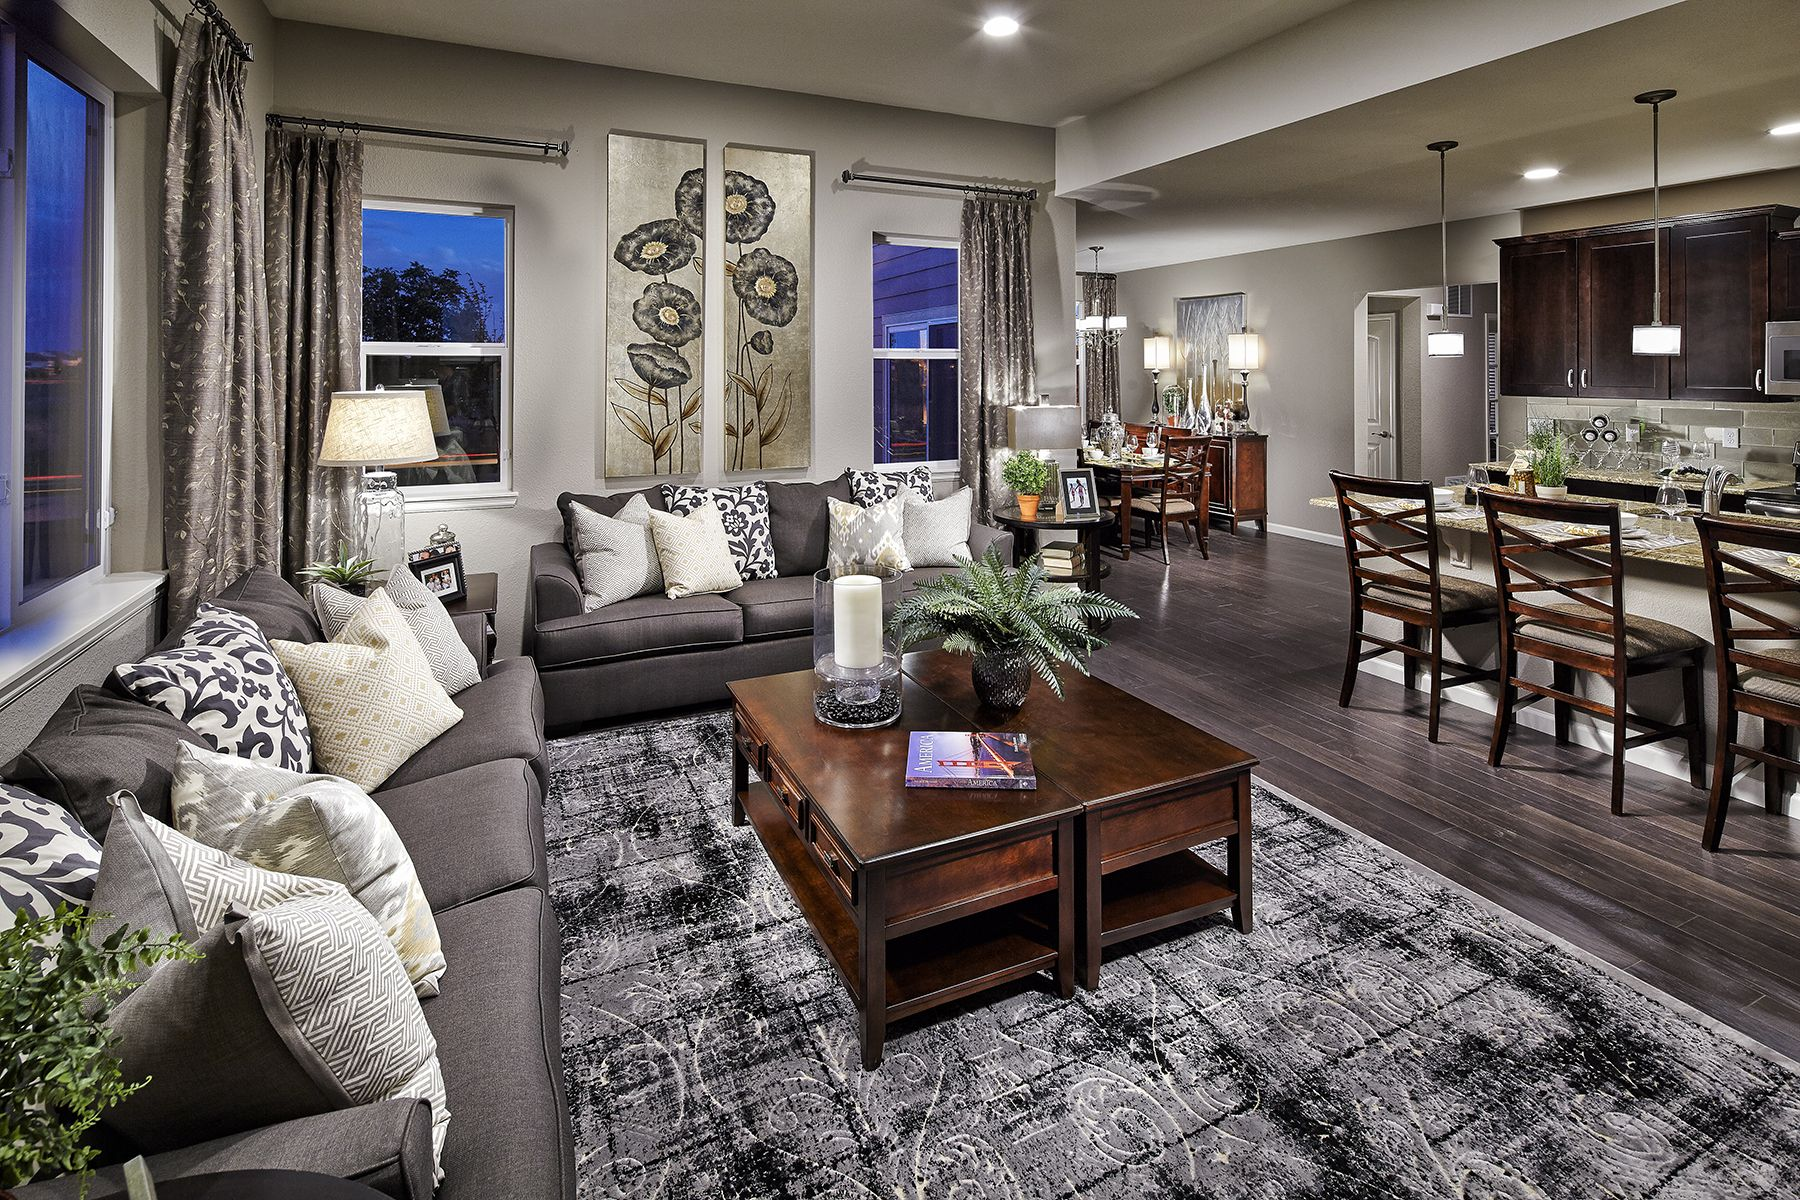 This open concept floor plan feels airy and spacious. The ...